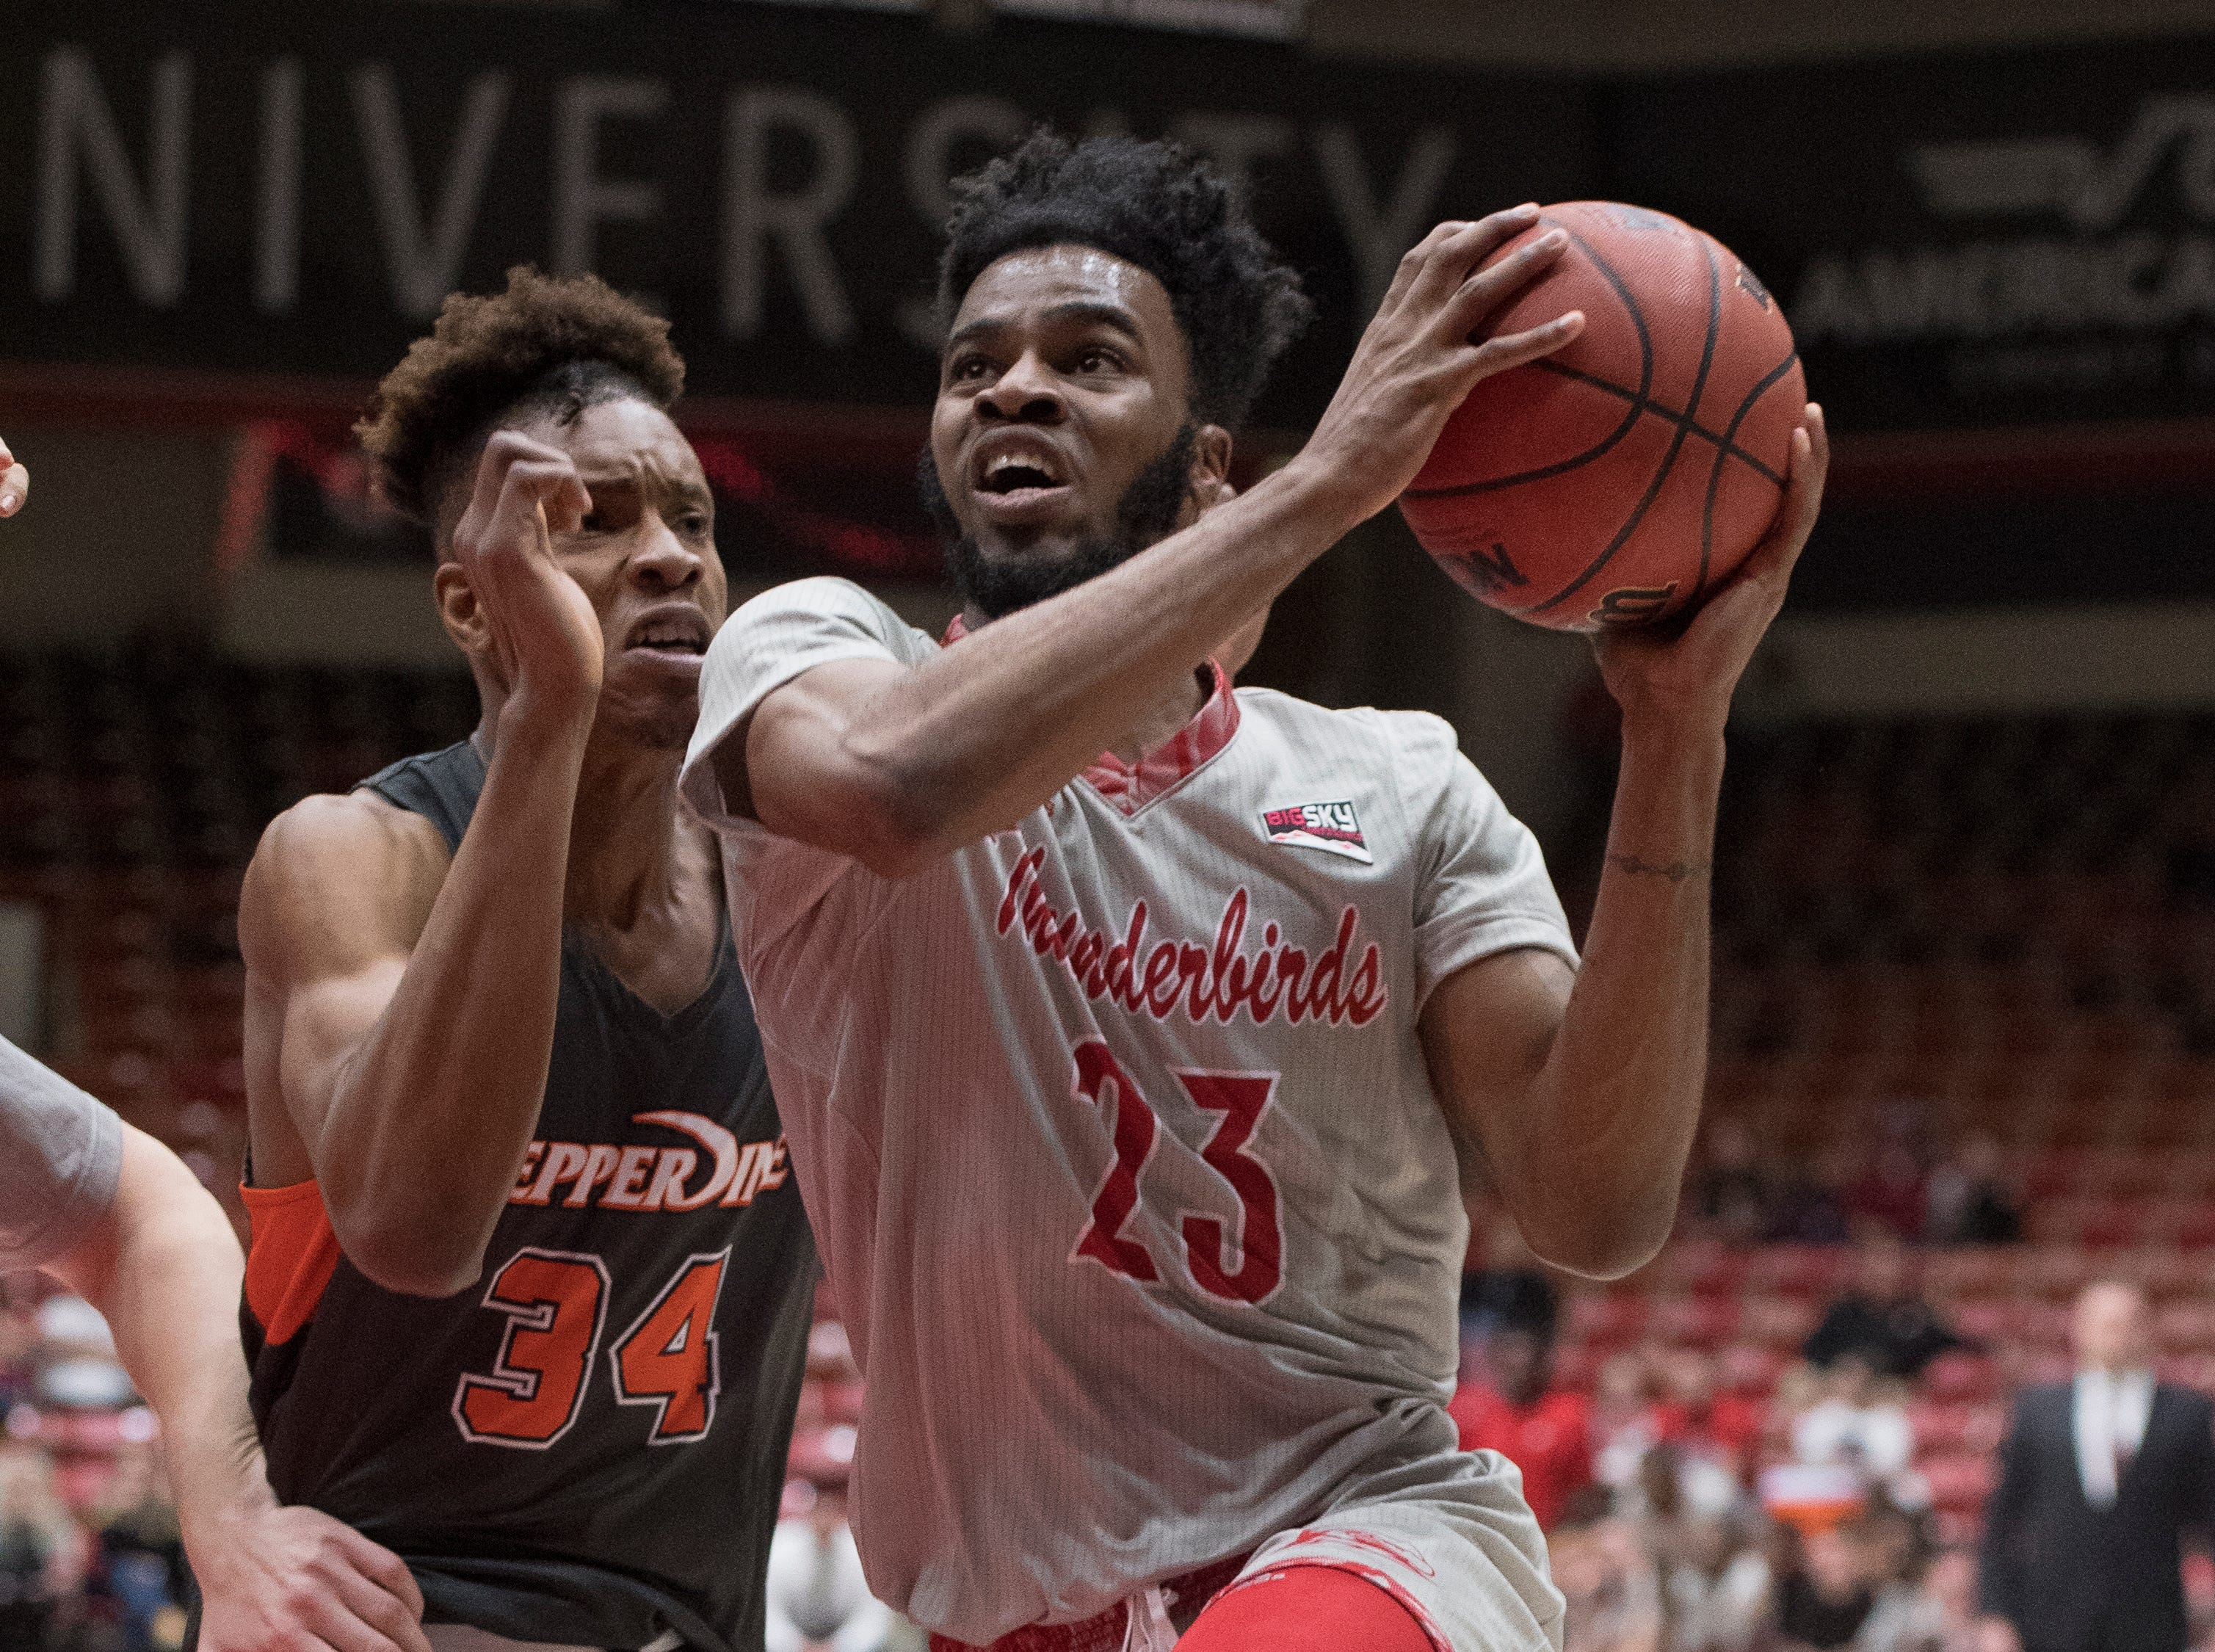 Southern Utah University junior Cameron Oluyitan (23) scores a basket during the game against Pepperdine University in the America First Event Center Saturday, December 15, 2018. SUU won in overtime, 78-69.